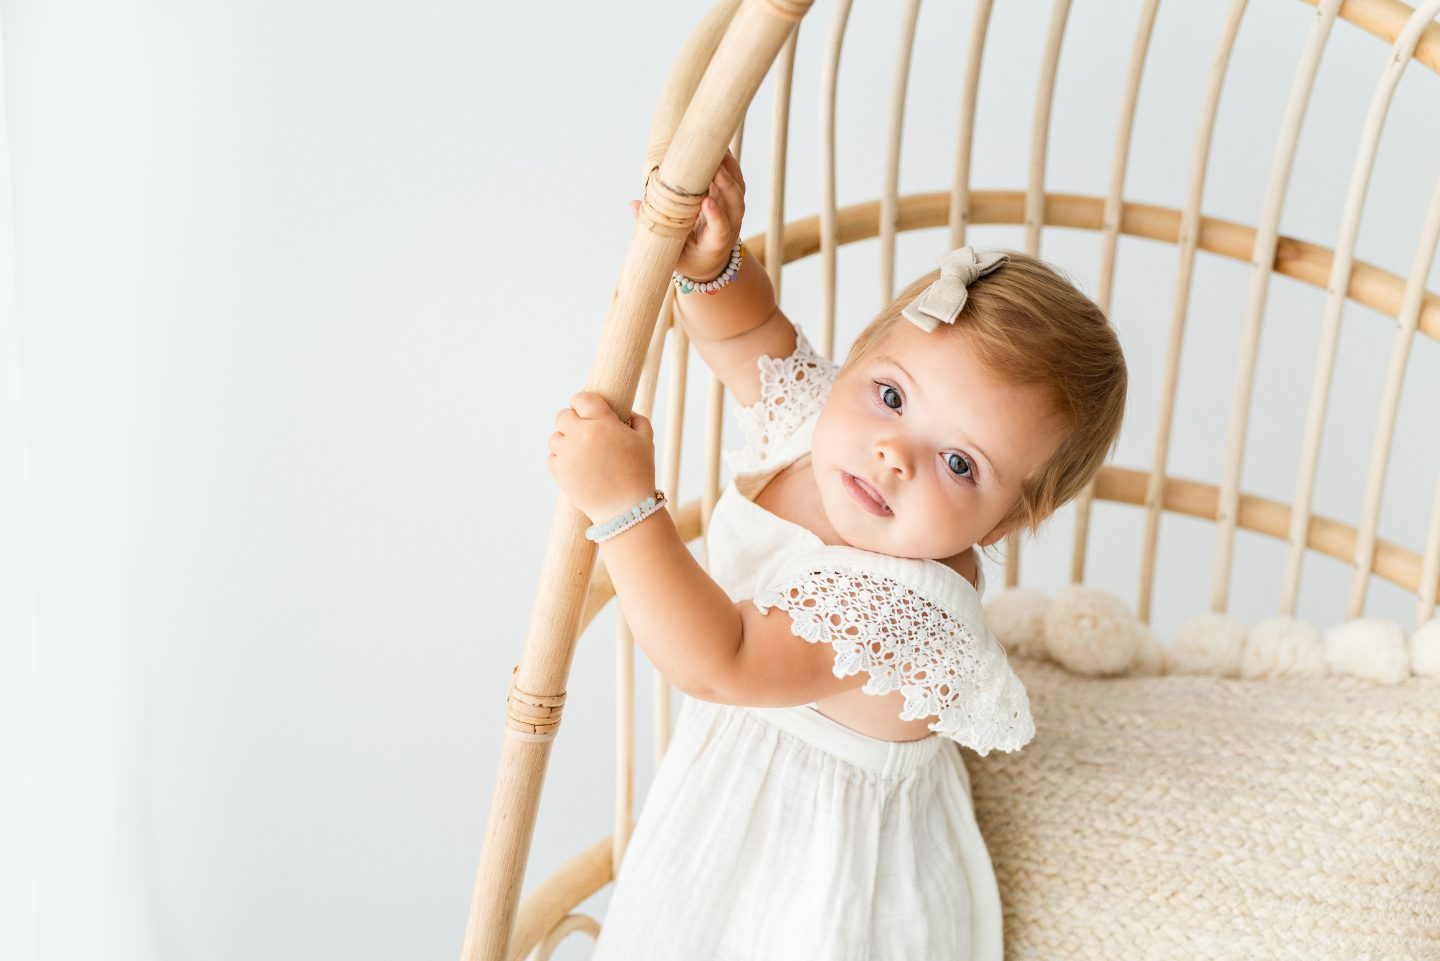 One Year Old Milestones by popular San Diego motherhood blog, Navy Grace: image of a baby girl wearing a white dress standing on a rattan chair.